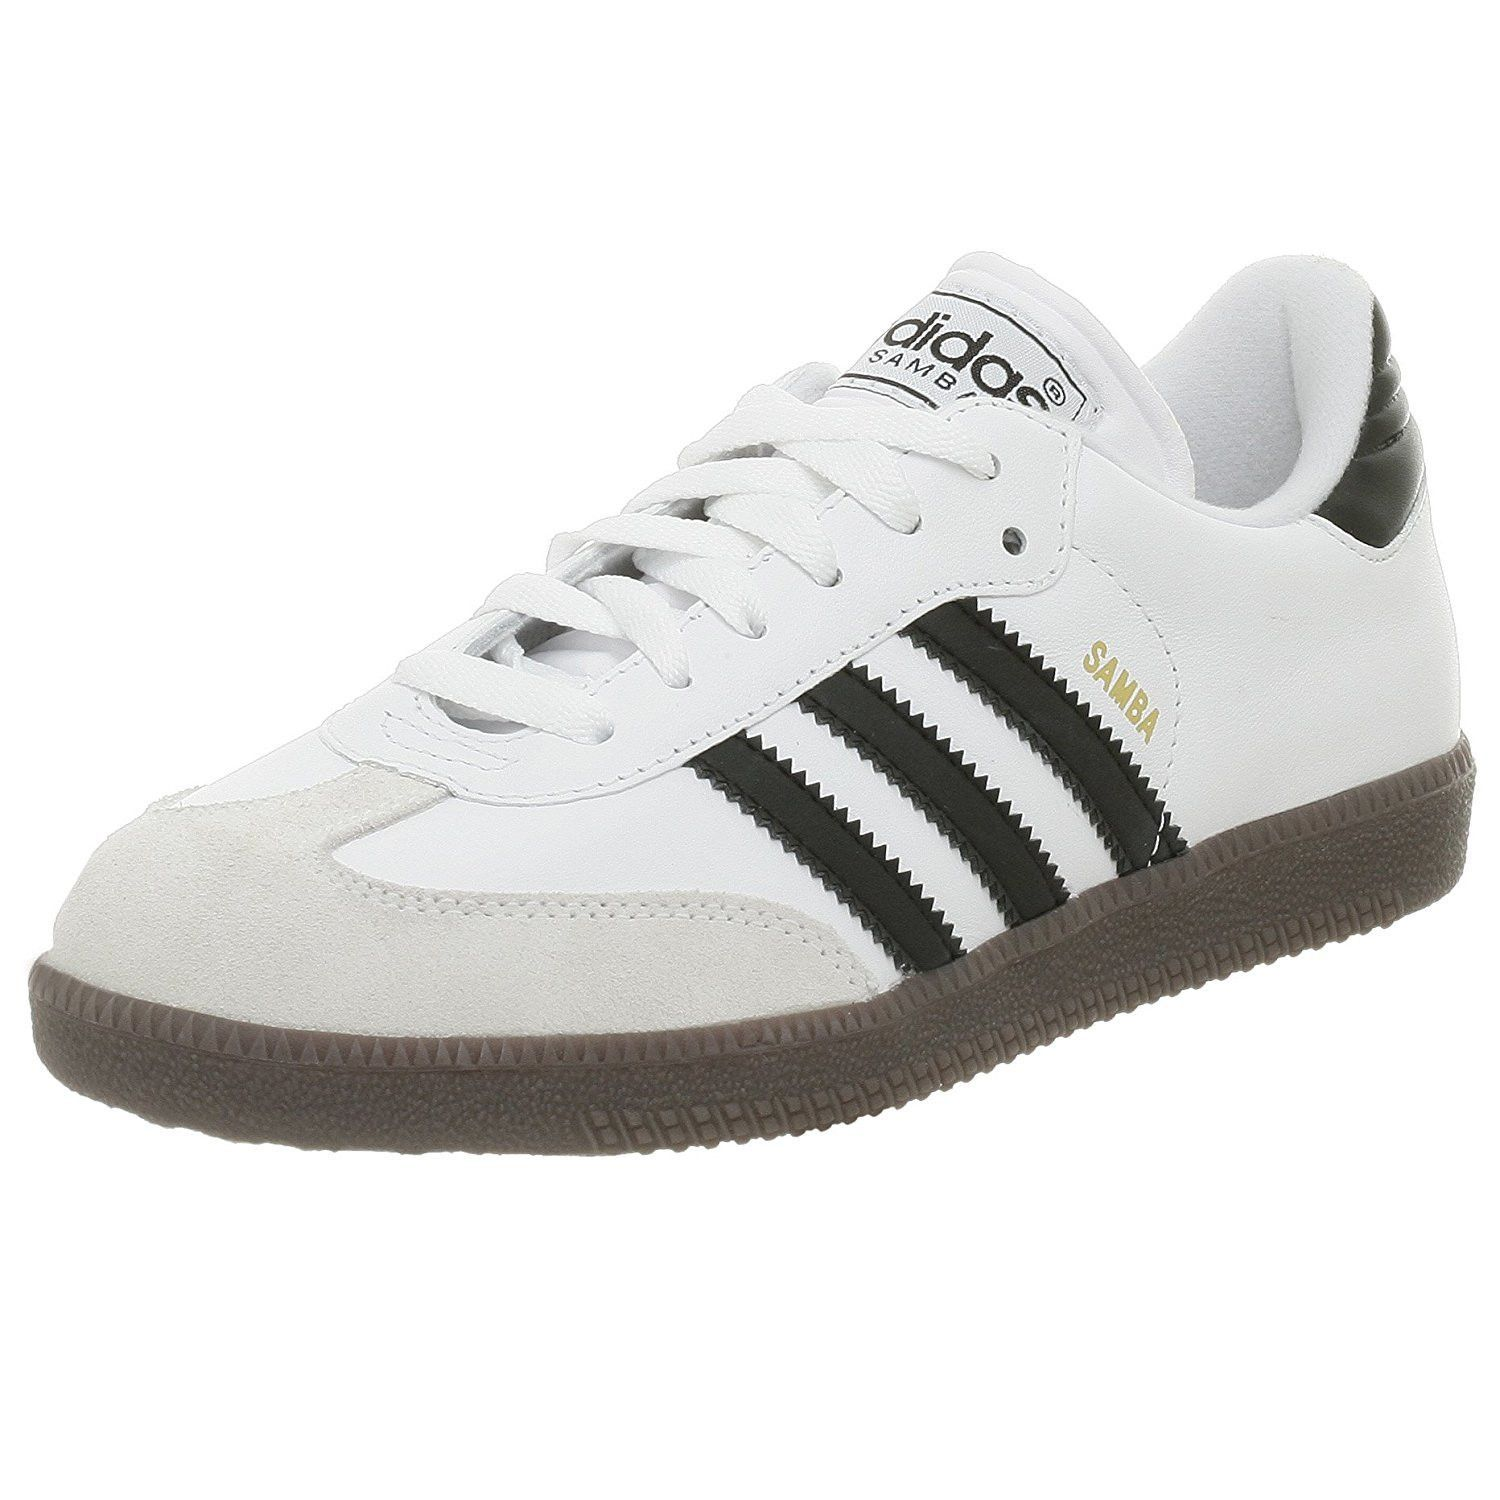 adidas Samba Classic Leather Soccer Shoe (Toddler/Little Kid/Big Kid)